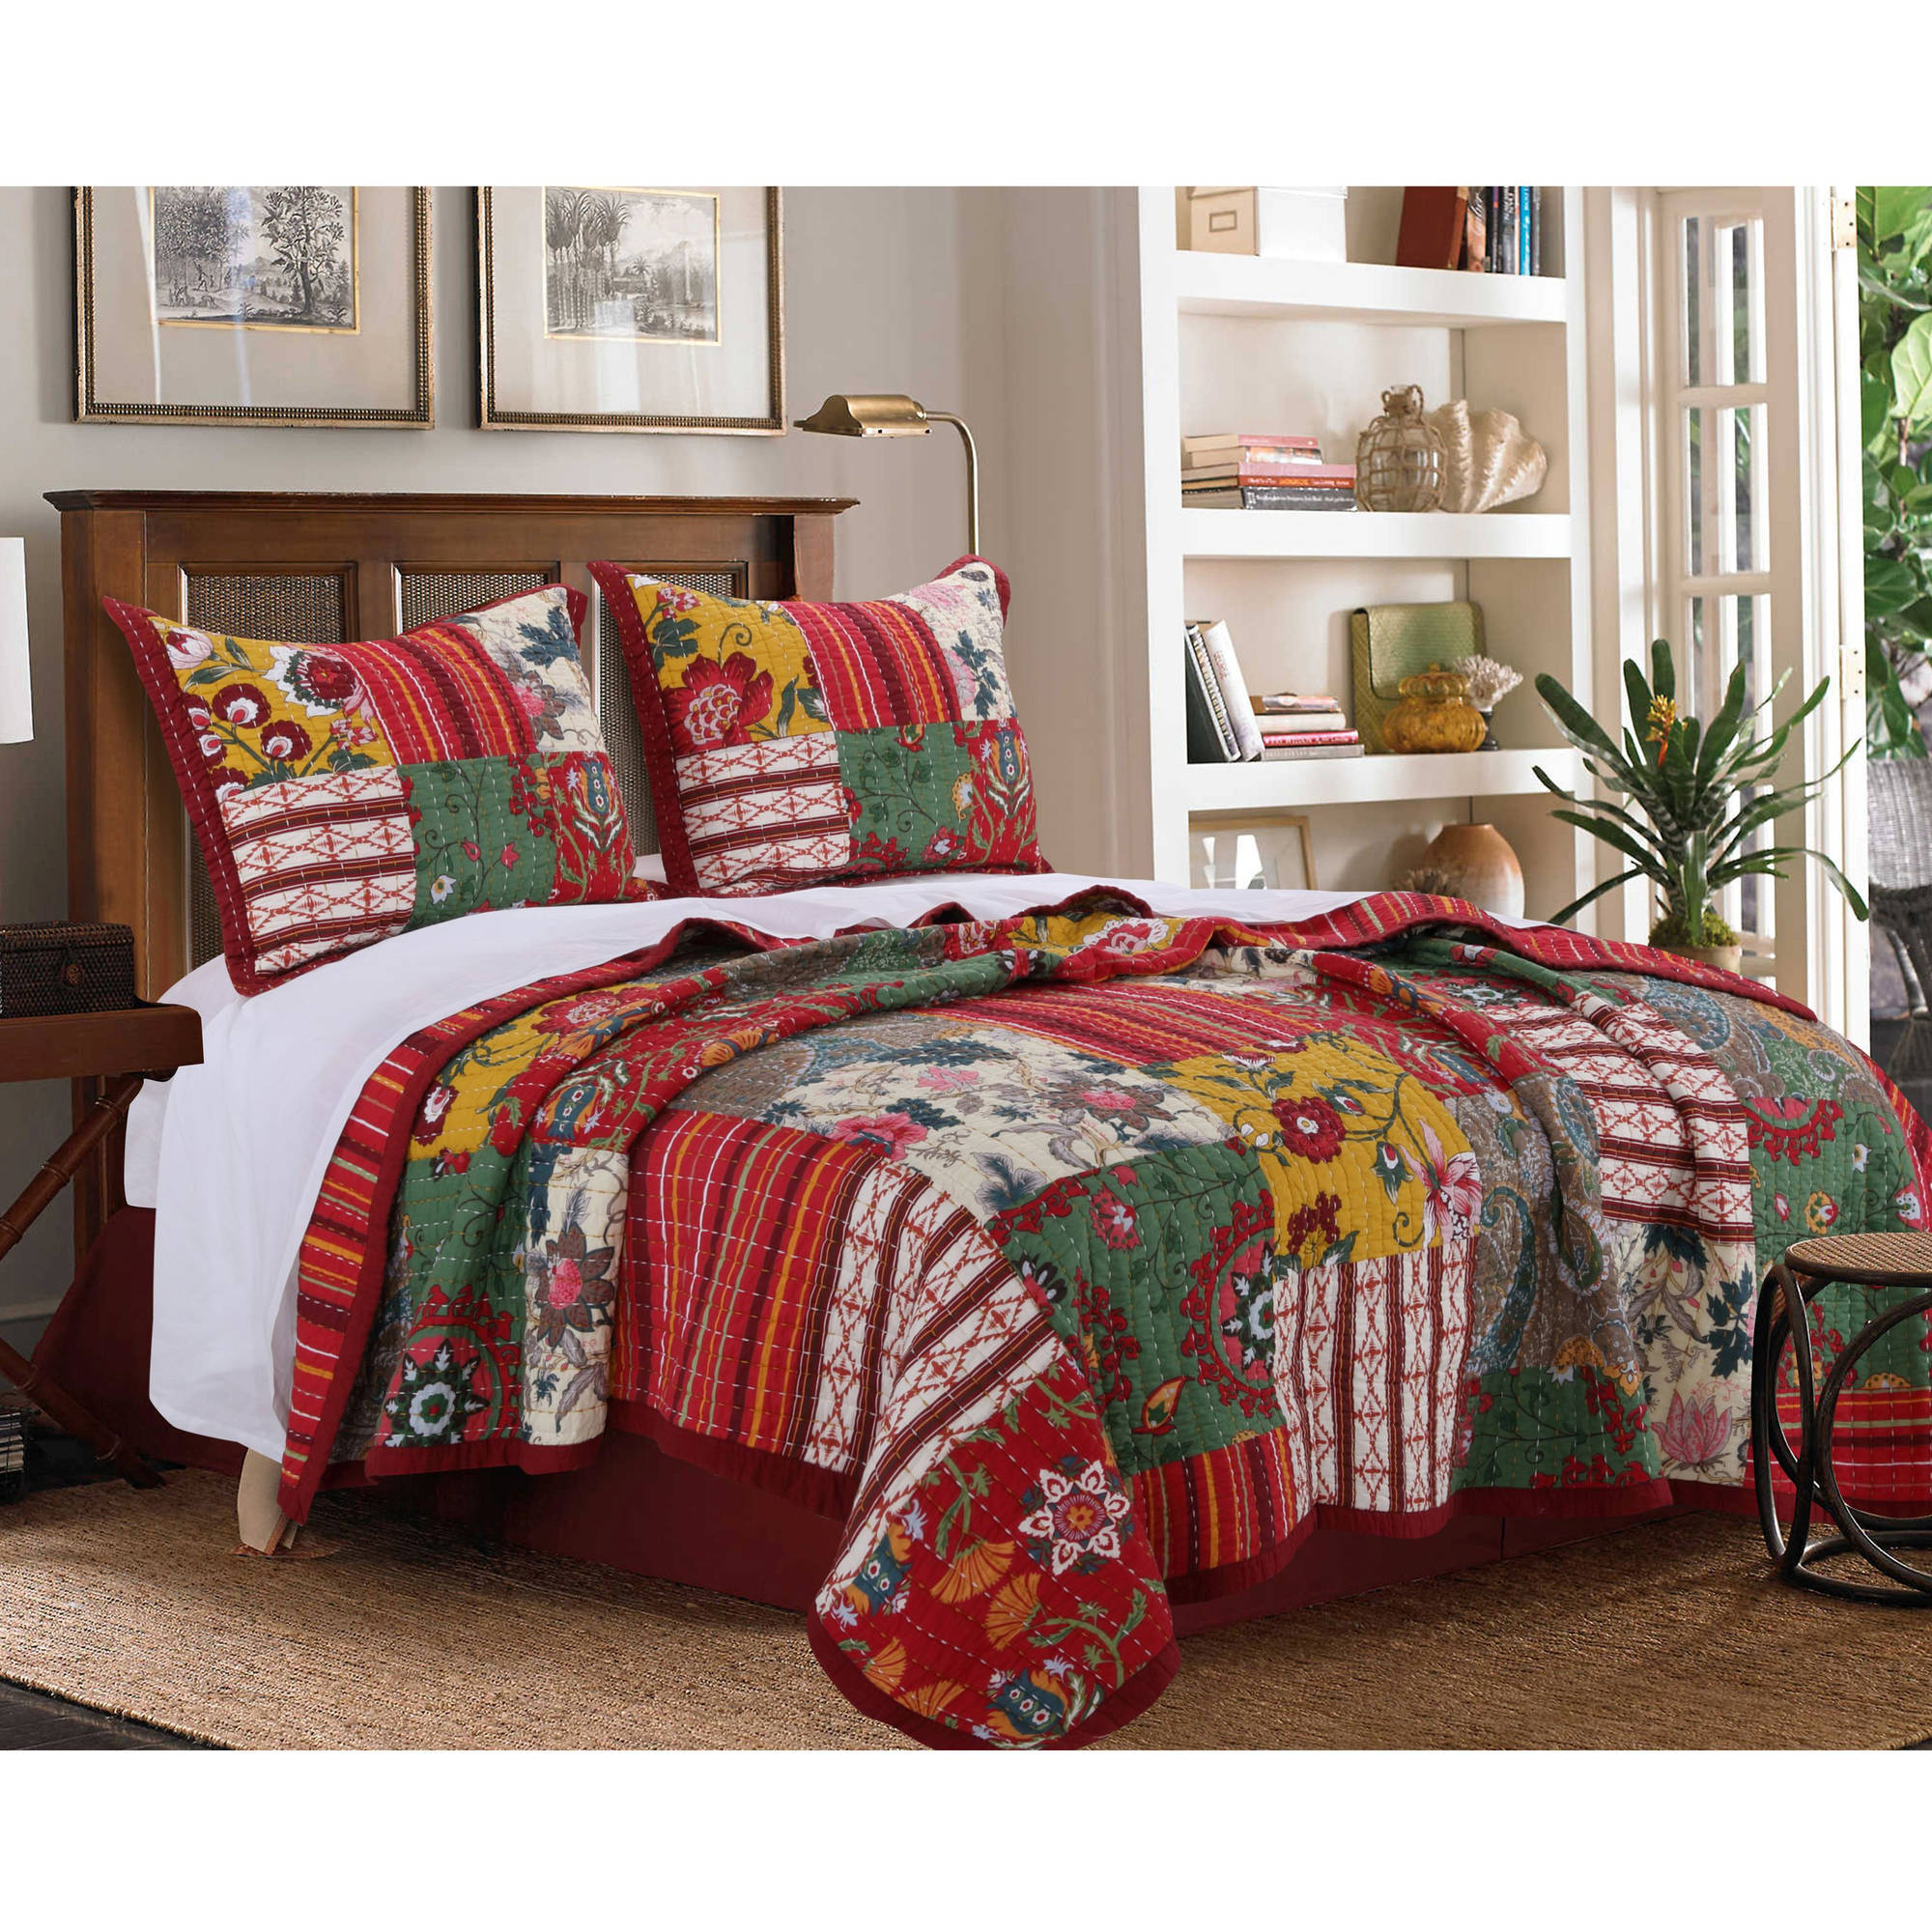 Global Trends Ava Quilt Set